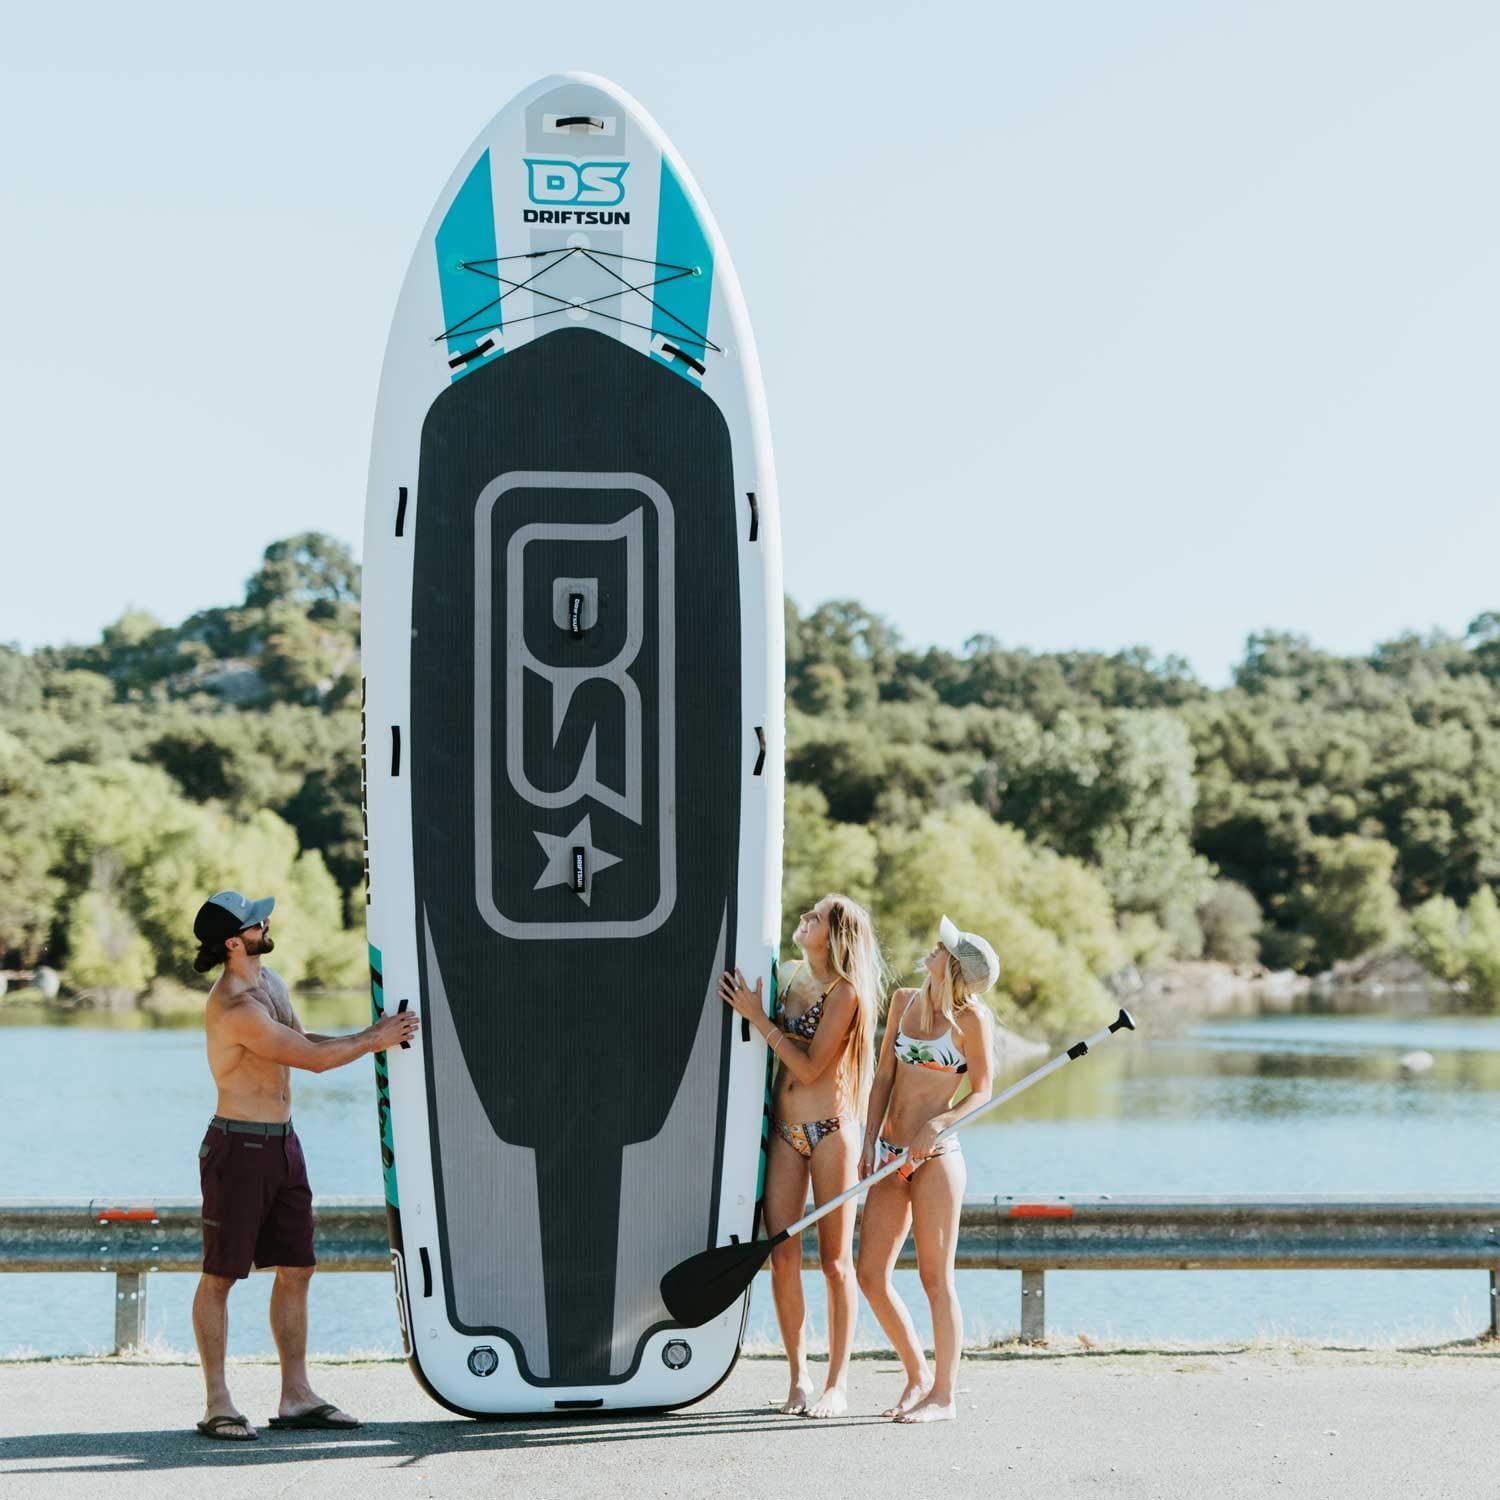 Driftsun Party Barge 15 Foot Inflatable Paddle Board, Large Multi Person Inflatable Stand Up SUP